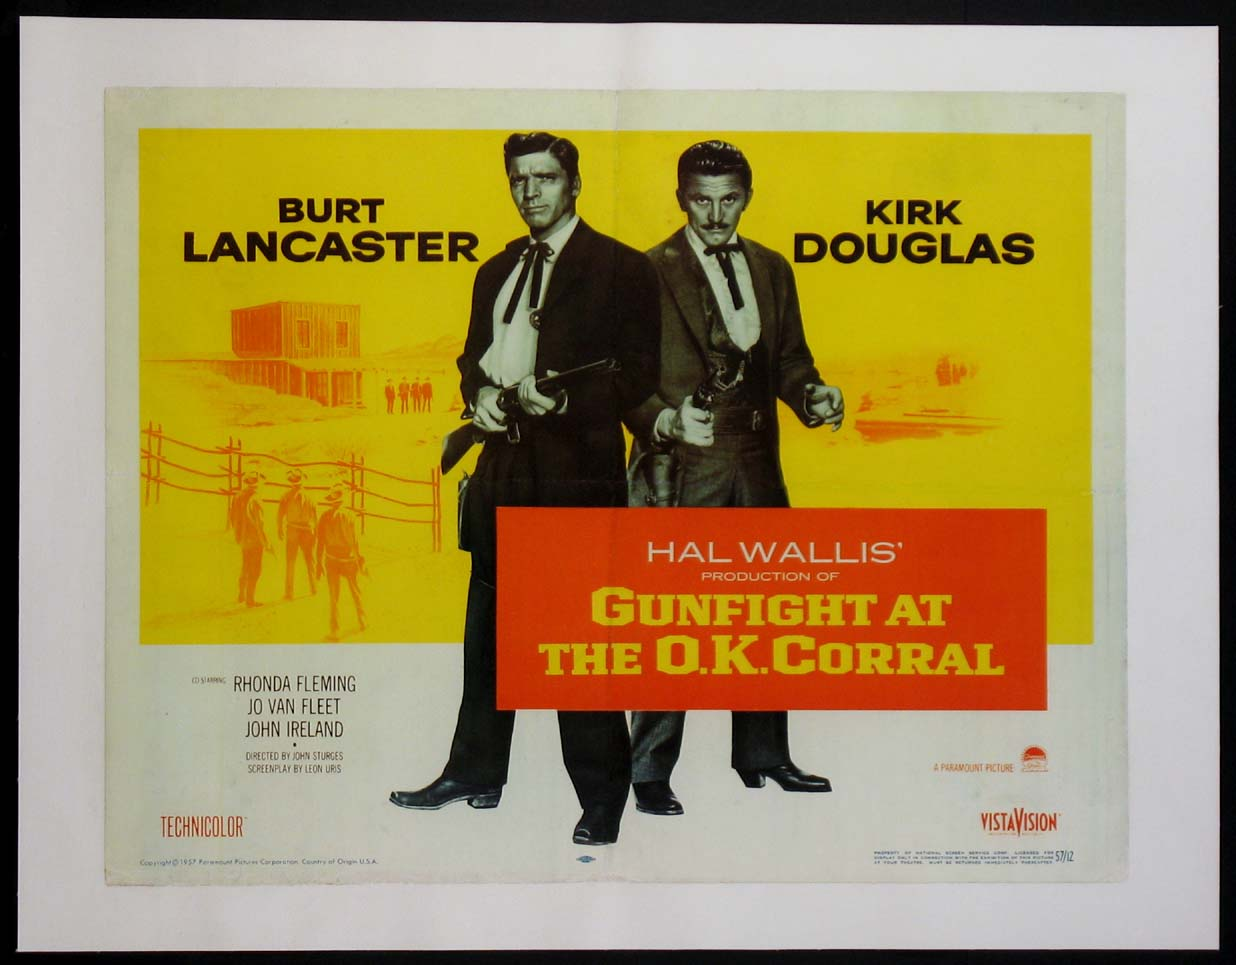 GUNFIGHT AT THE O.K. CORRAL @ FilmPosters.com